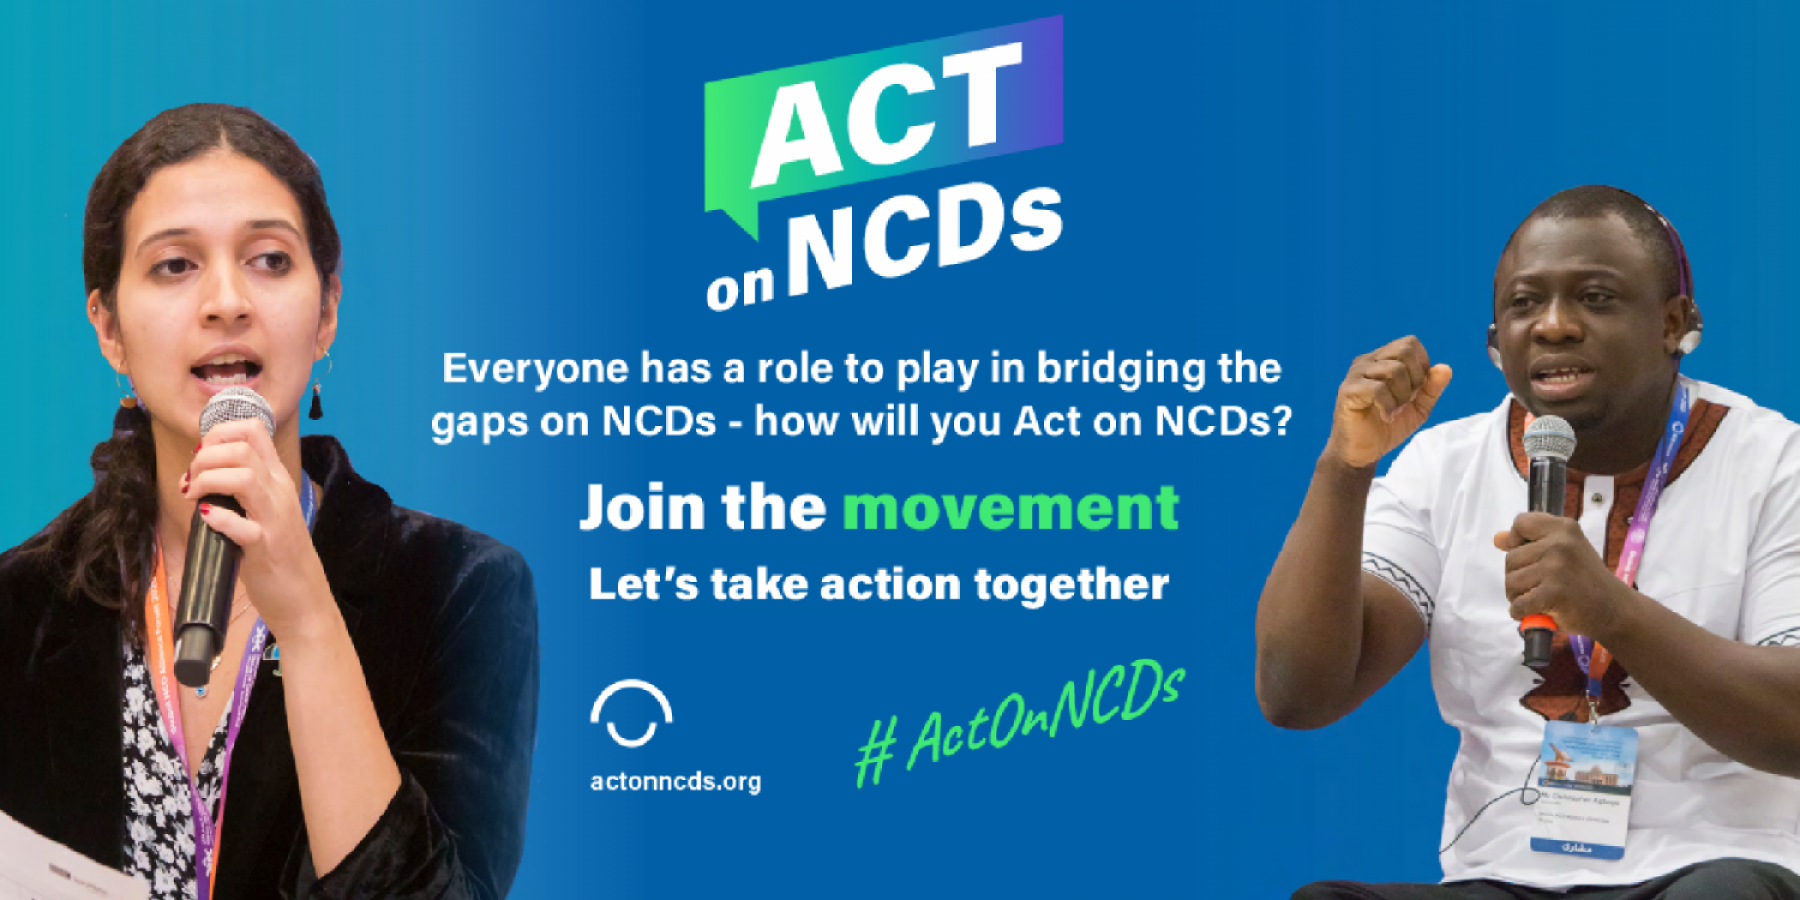 2020 Global Week for Action on NCDs